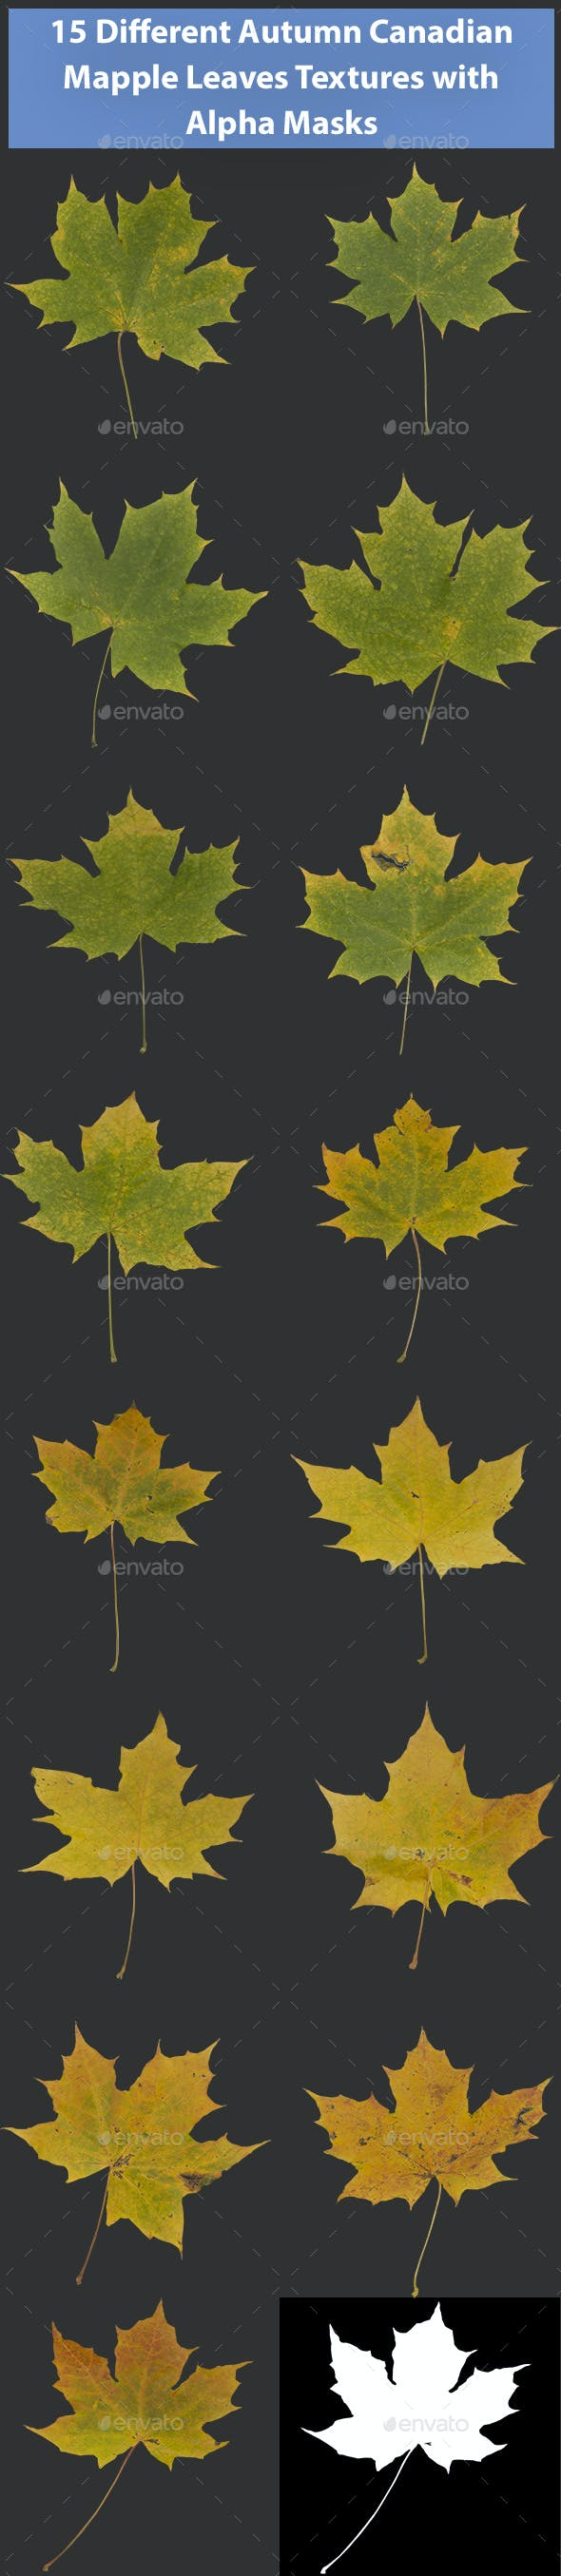 15 Different Canadian Mapple Leaves Textures - 3DOcean Item for Sale